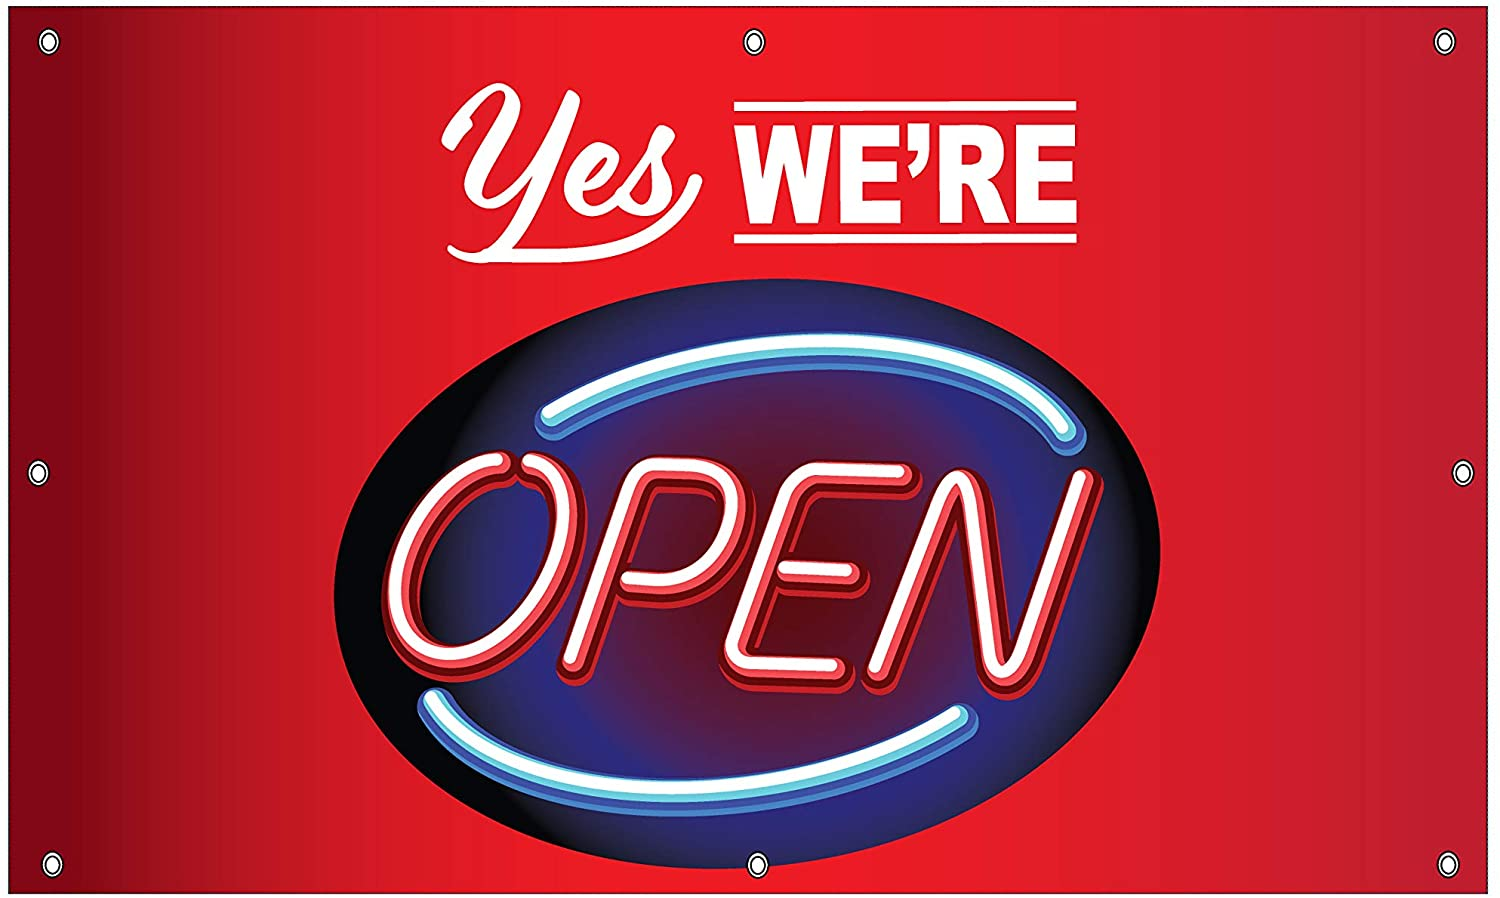 We Deliver, Carryout, Pick Up, Open Essential Service Sign 3x5 Outdoor, Heavy Duty, Vinyl Banner w/Grommets for Restaurants, Markets and Business, Simple Signs, Easy to Hang (We're Open)